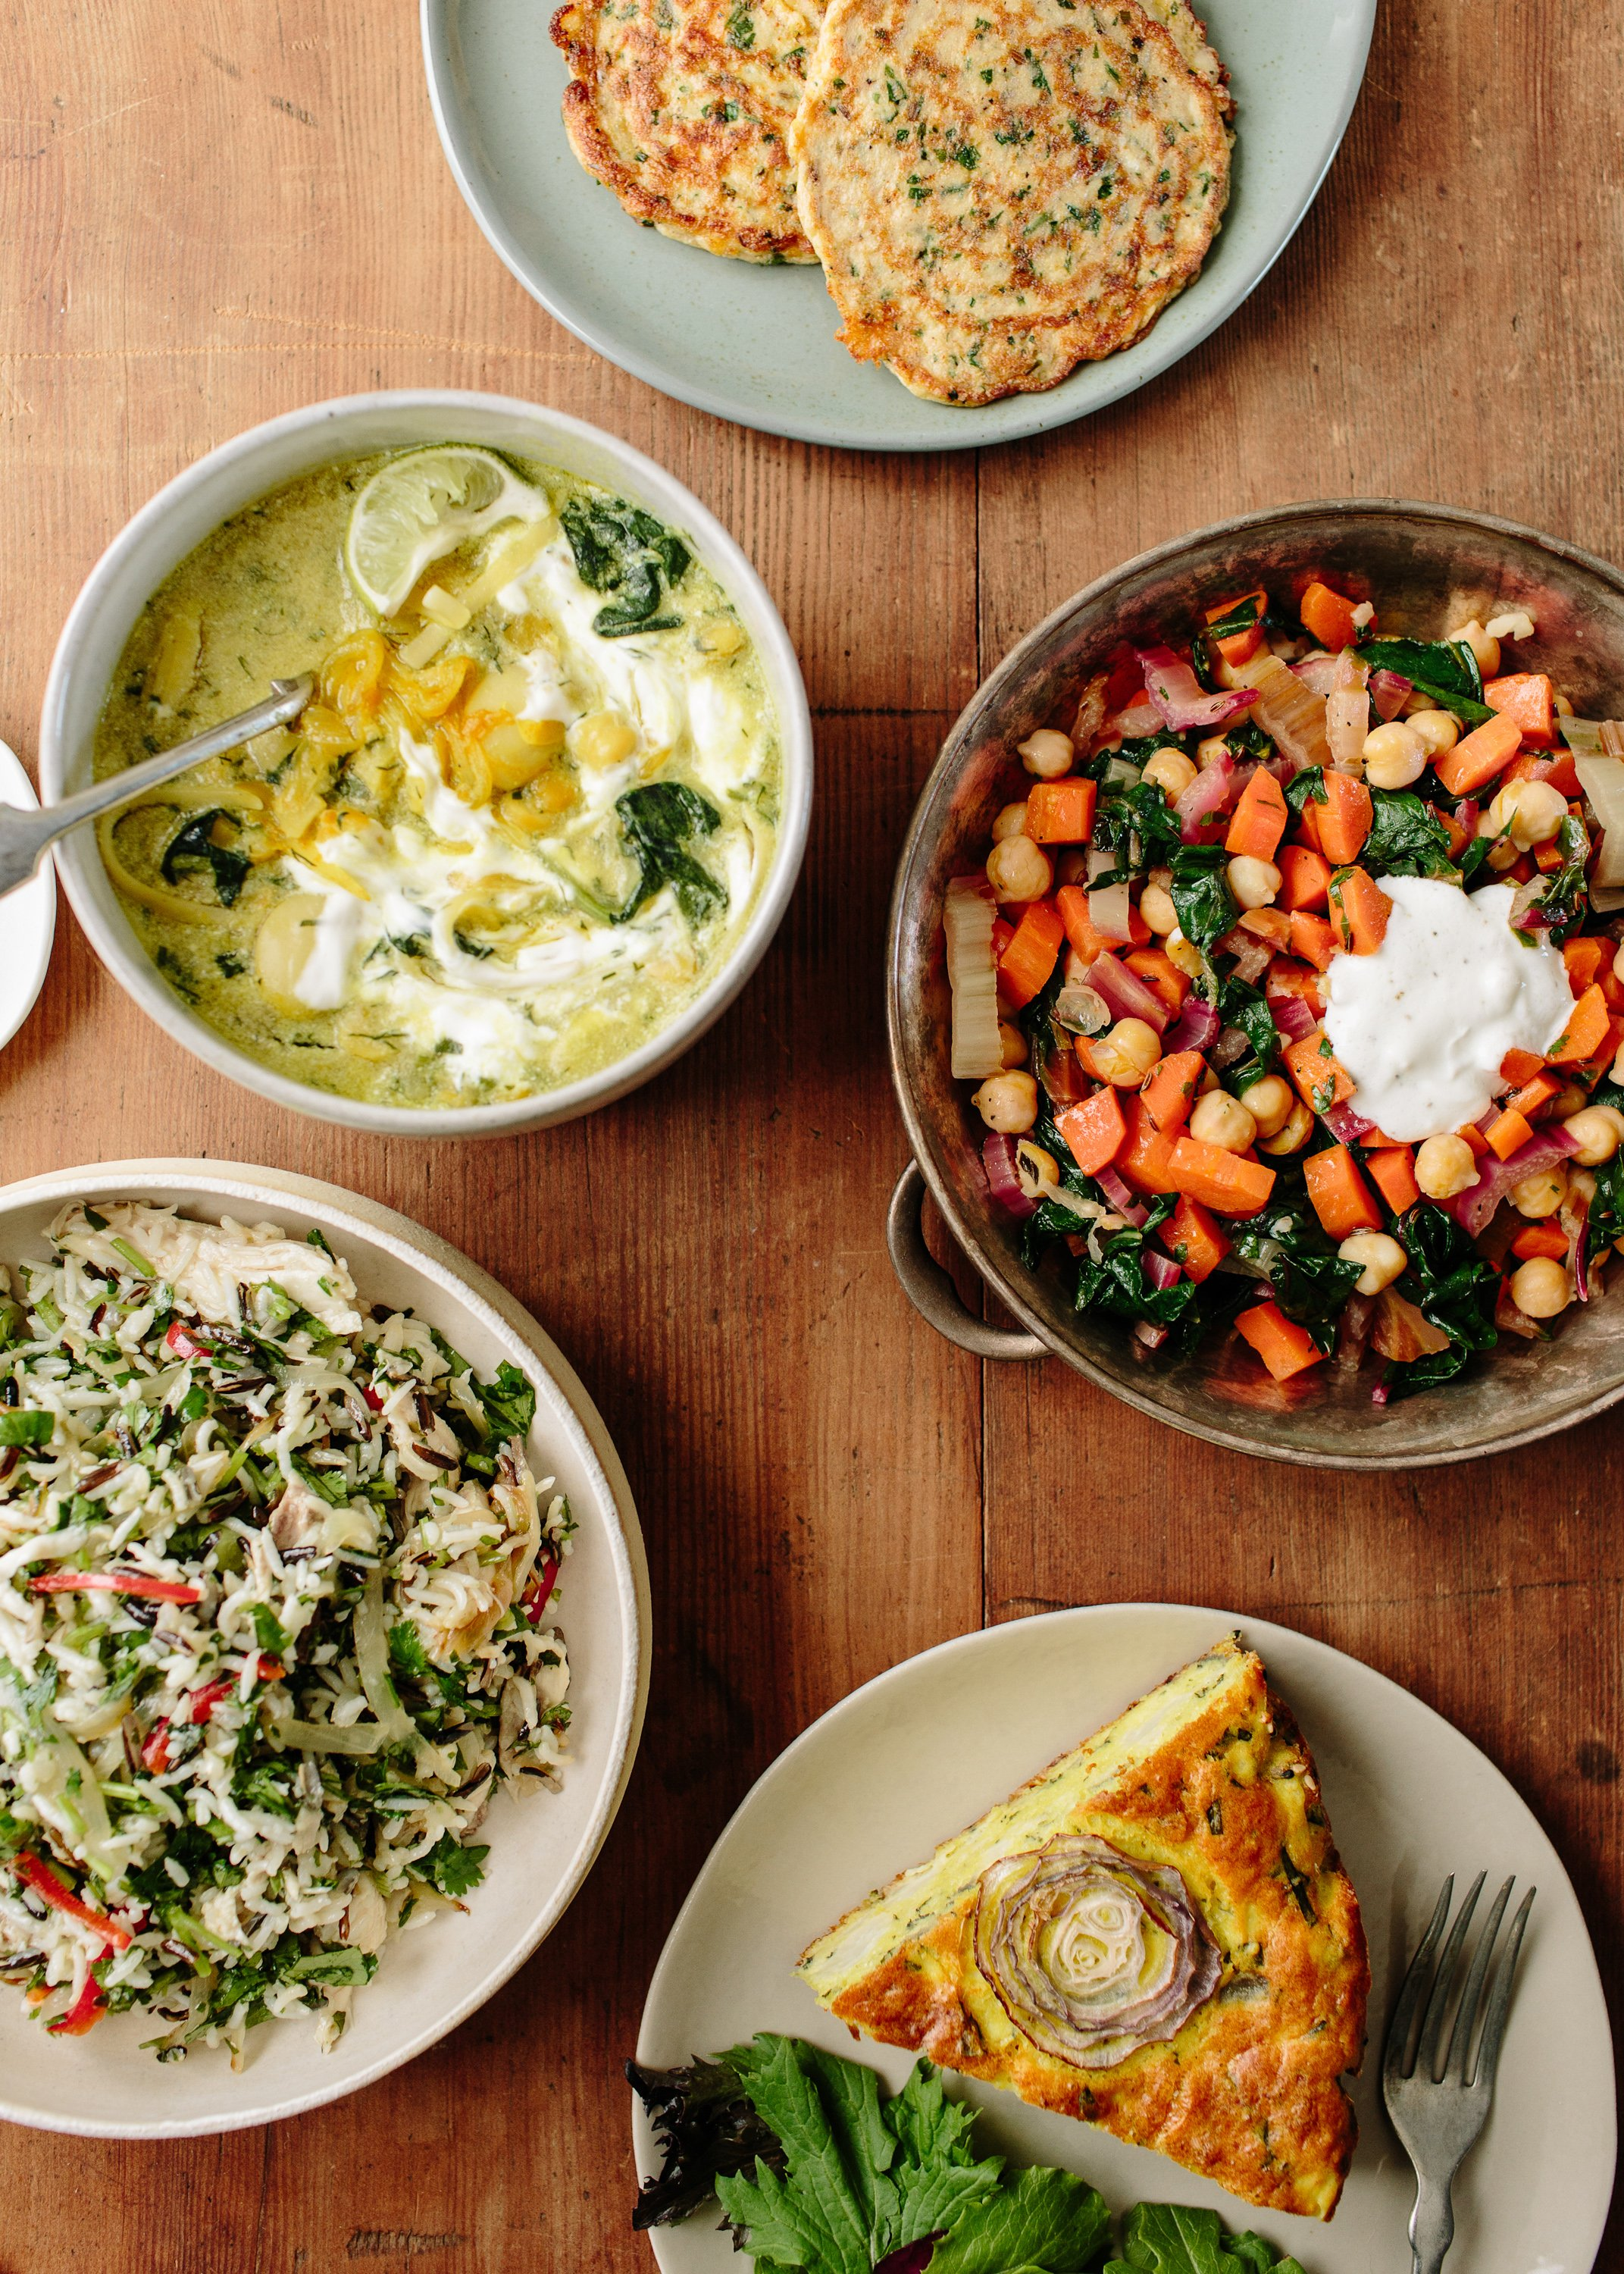 A Week of Lunches from Ottolenghi | Kitchn